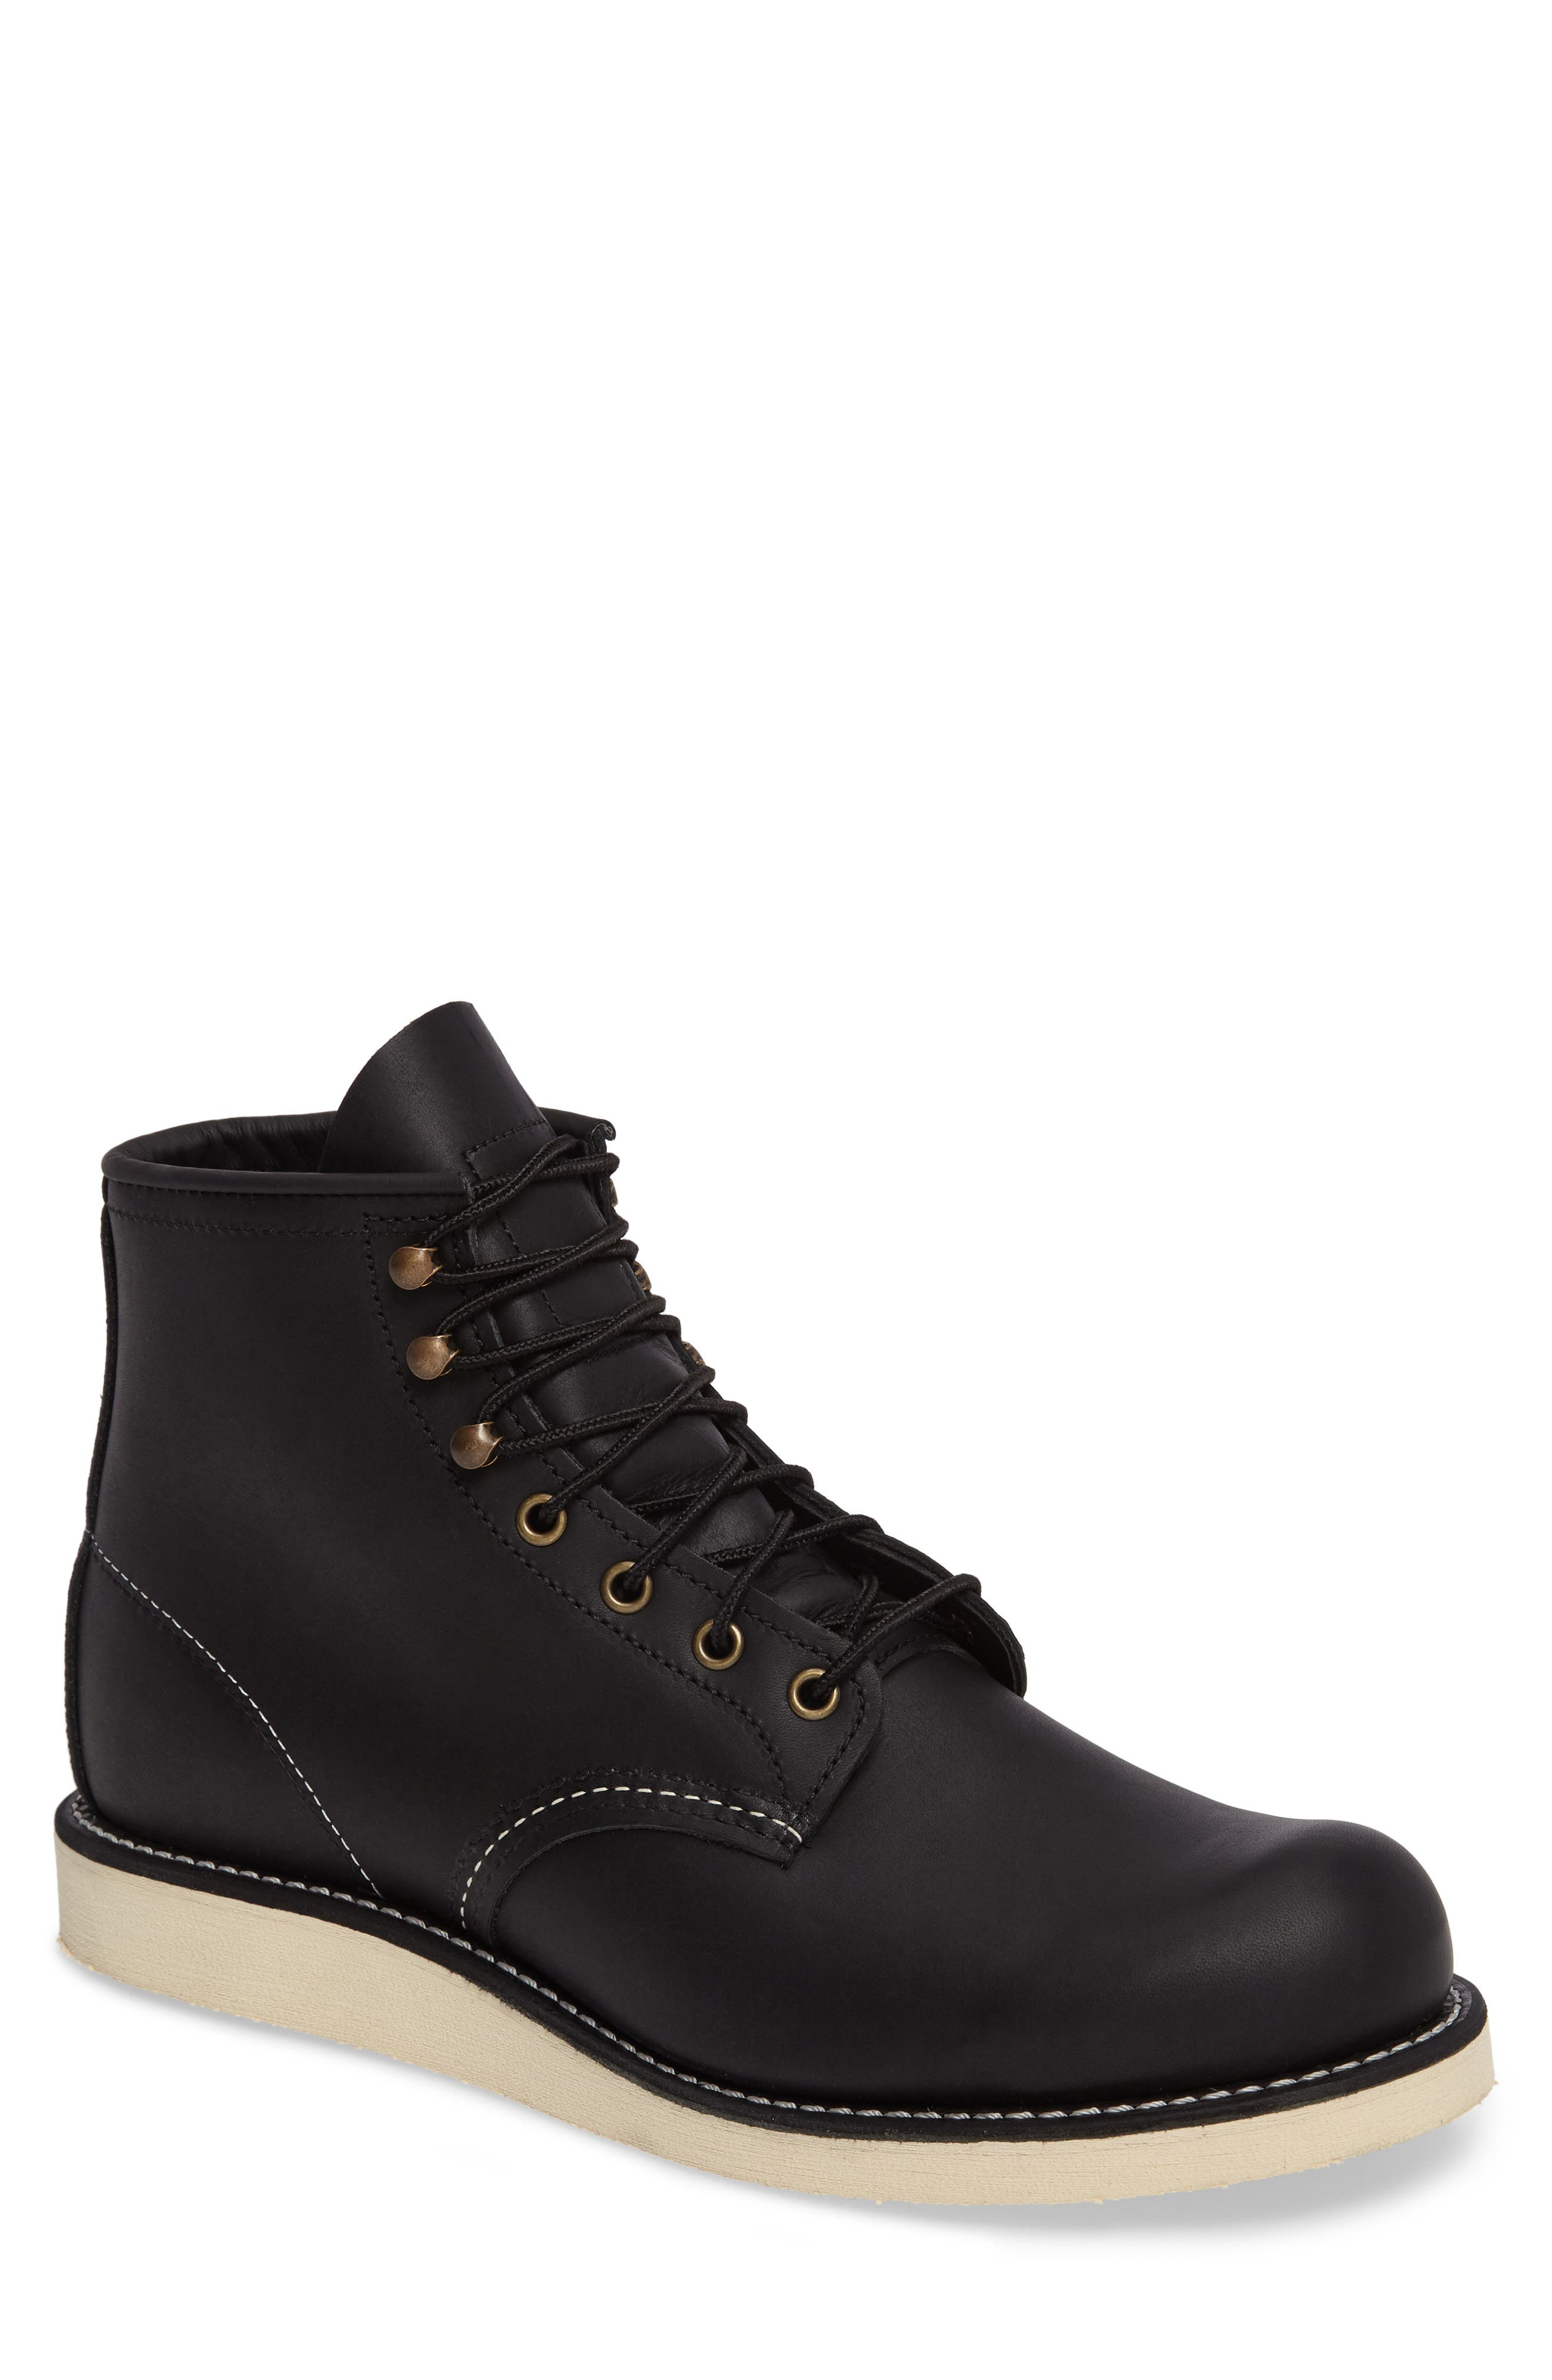 Red Wing Rover Plain Toe Boot, Black